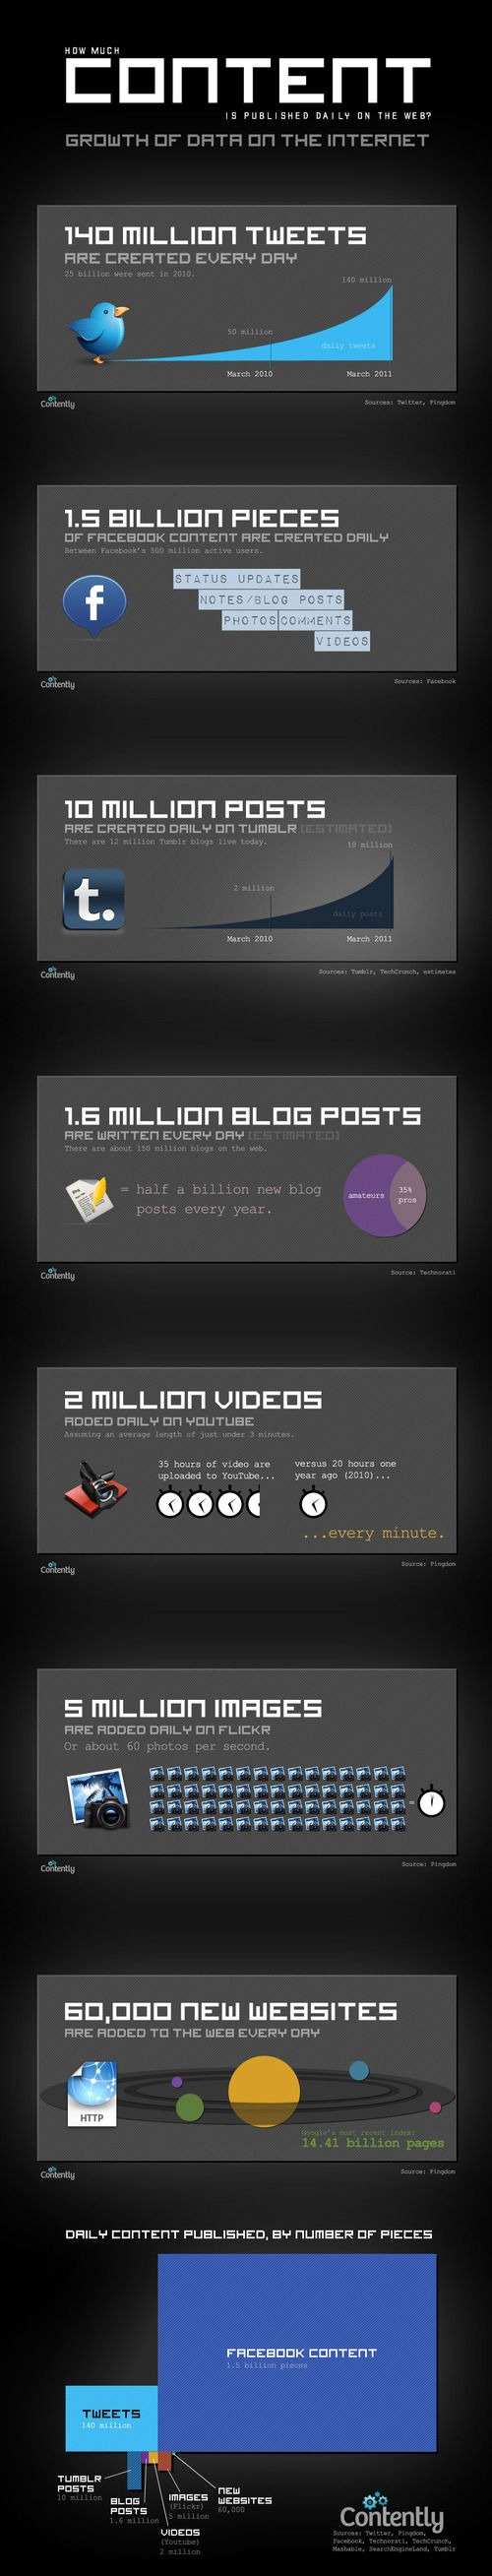 How Much Content Is On The Web? [Infographic]